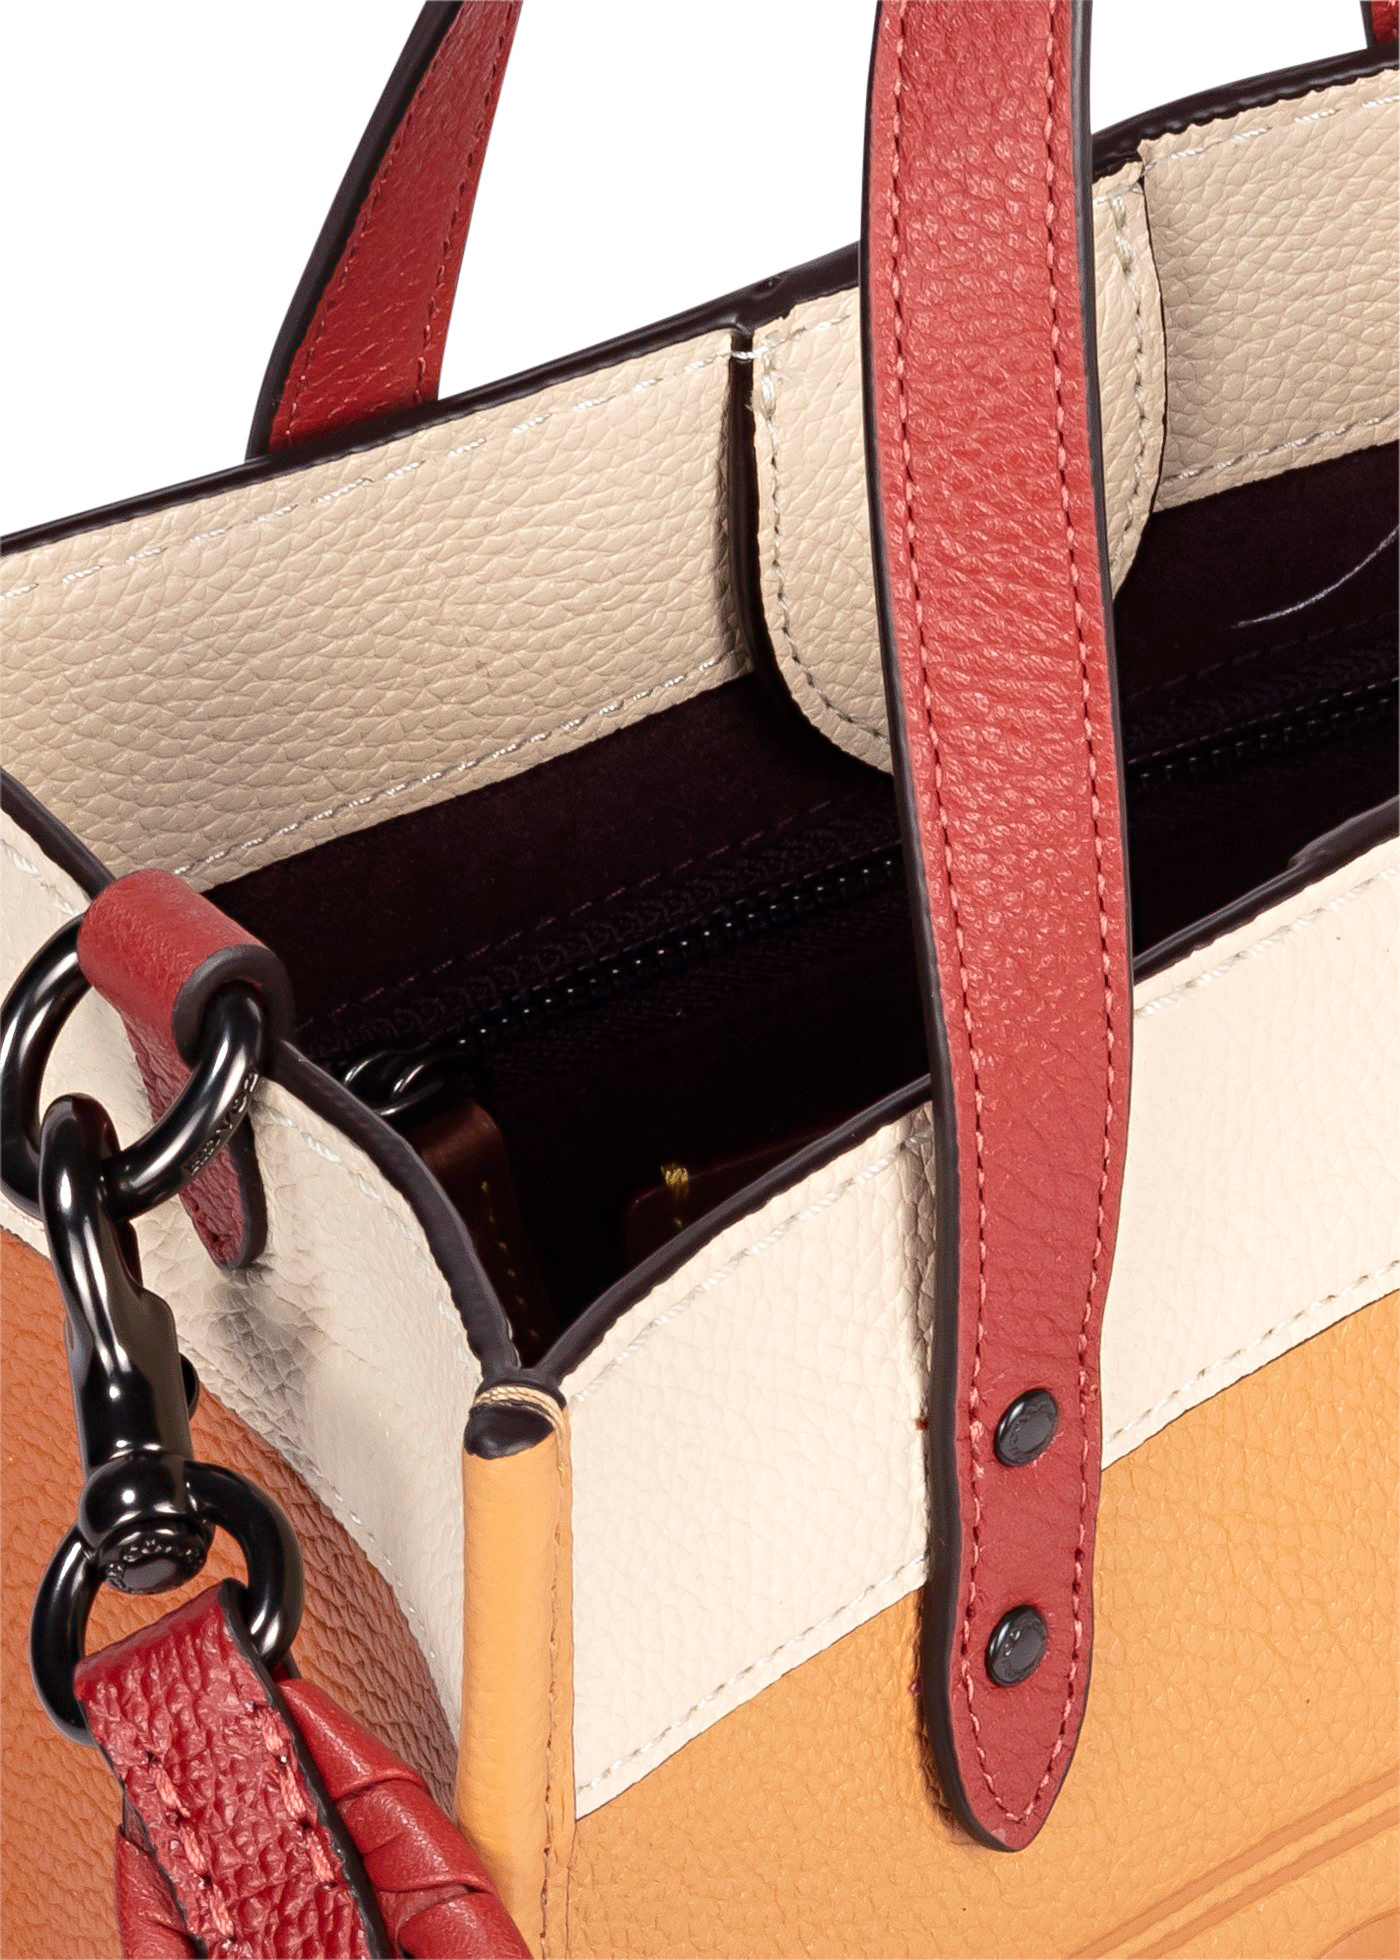 DLlorblock leather whipstitch detail DLach badge field tote image number 3